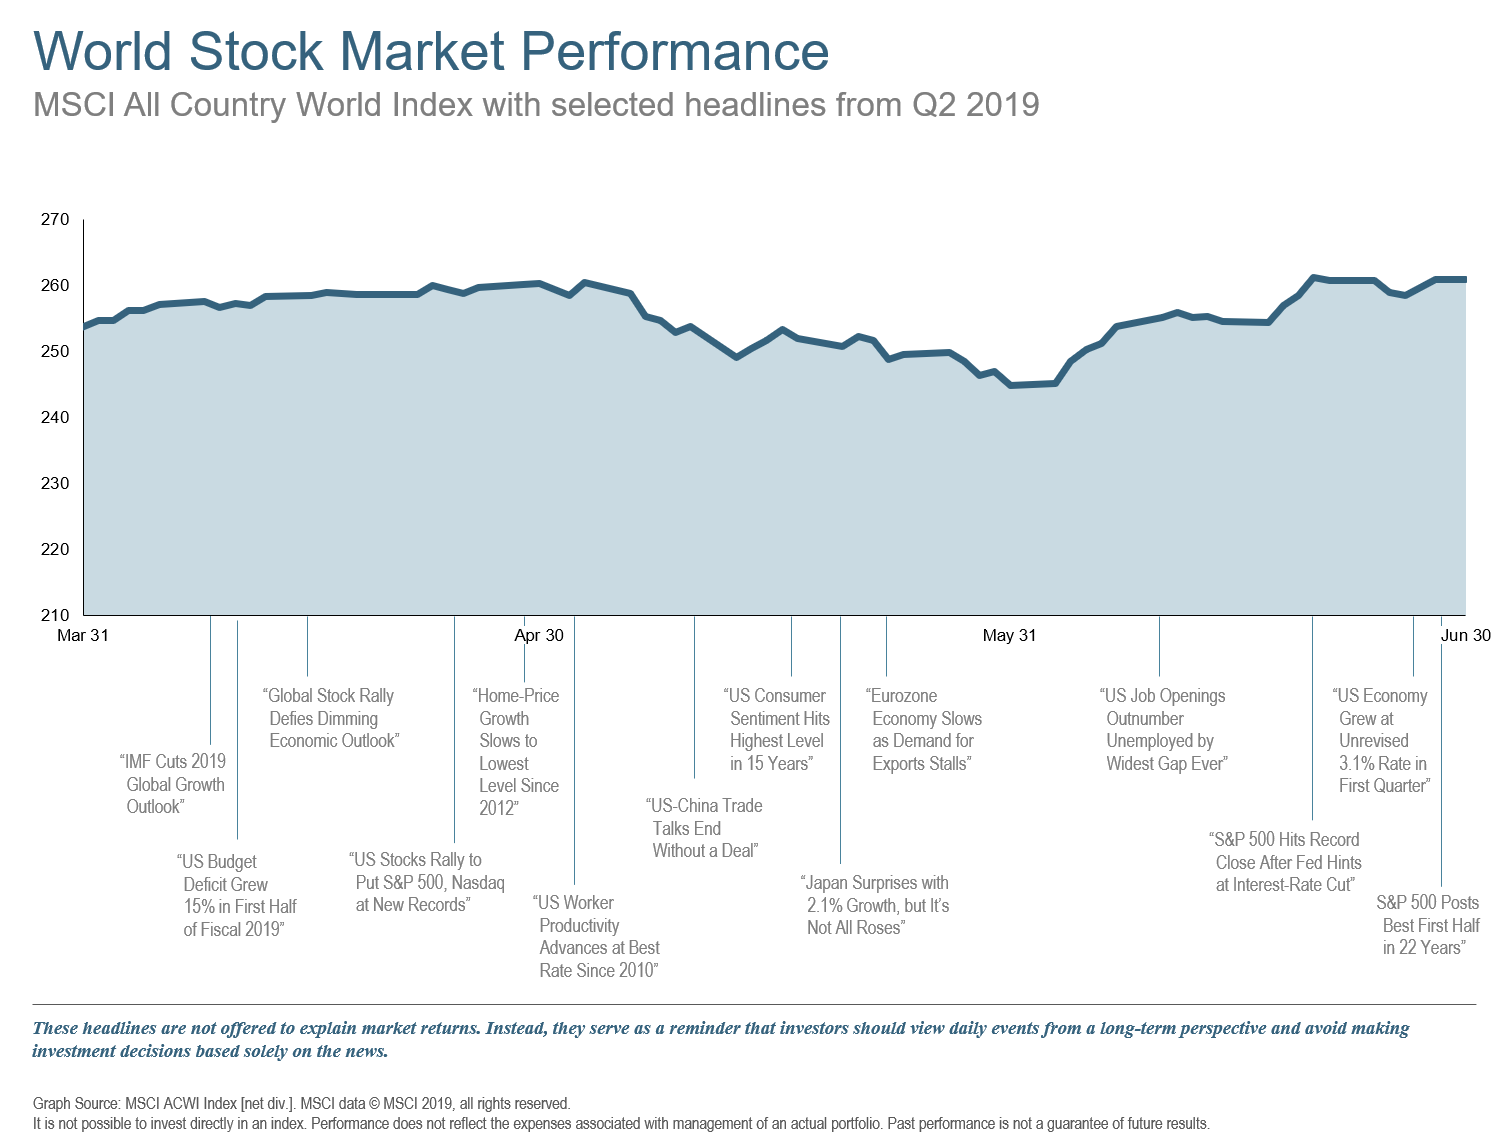 Q2 2019 World Stock Market Performance